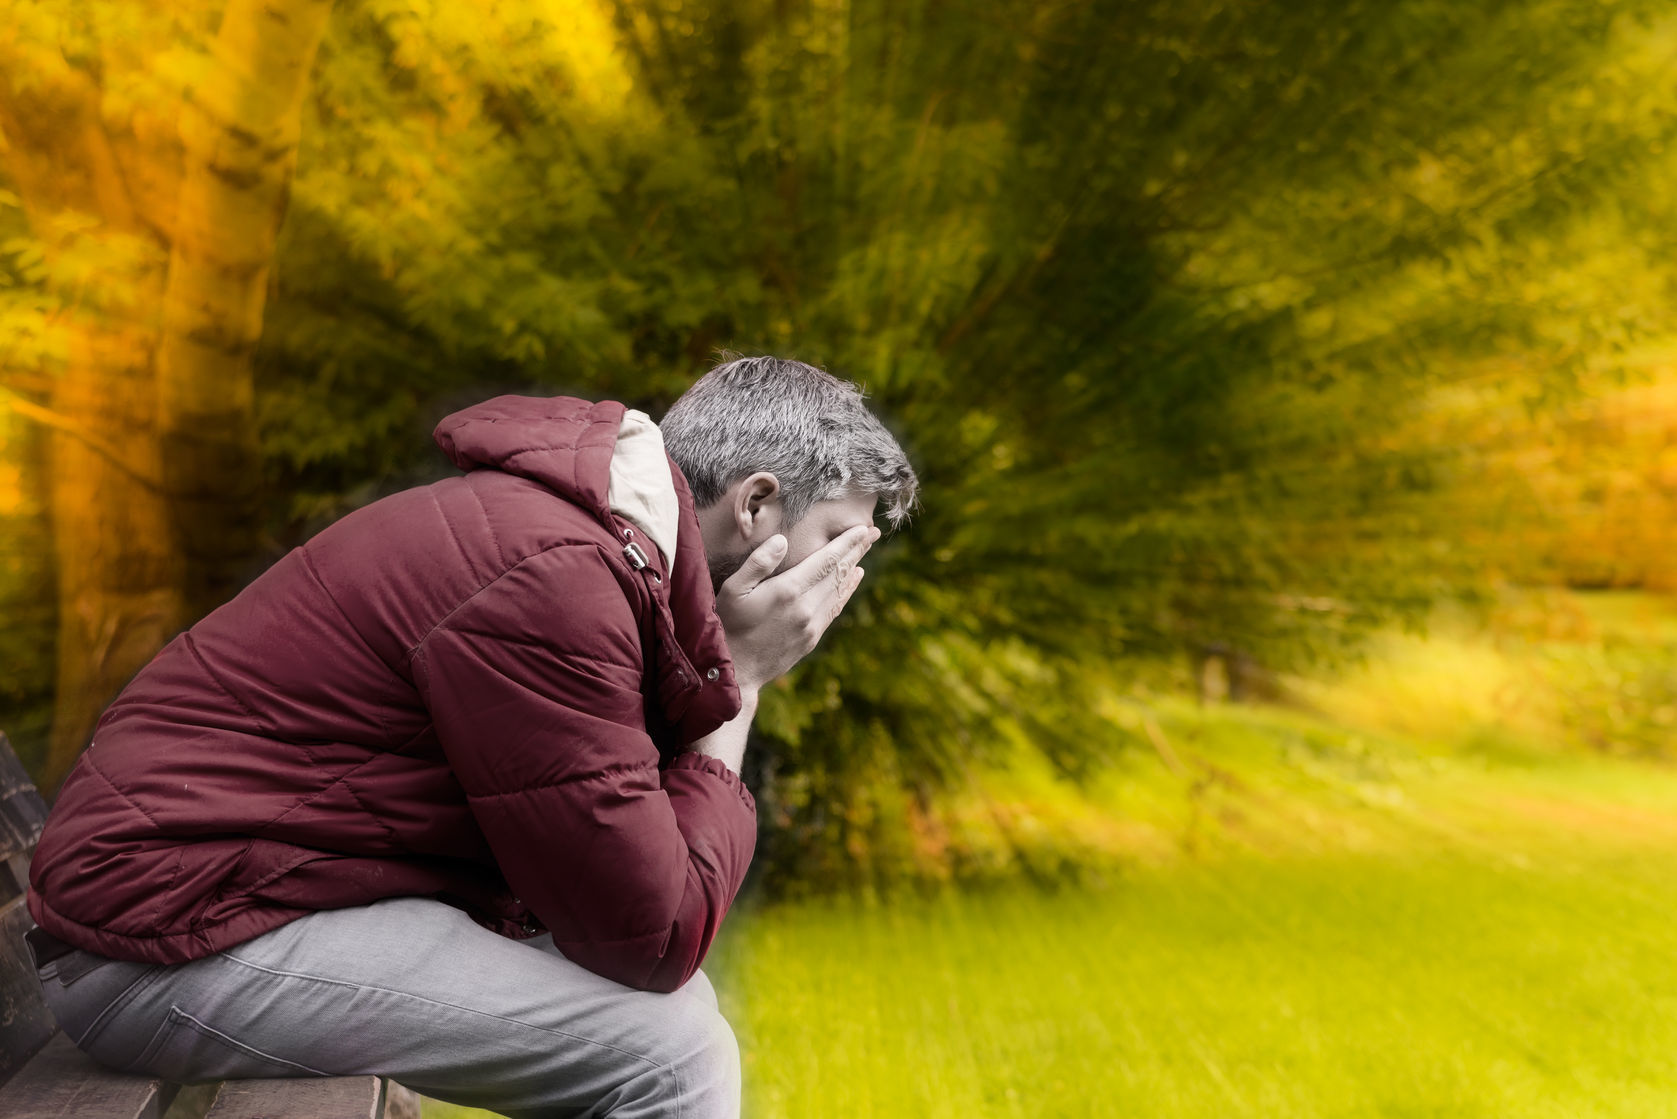 grief of the unfaithful partner